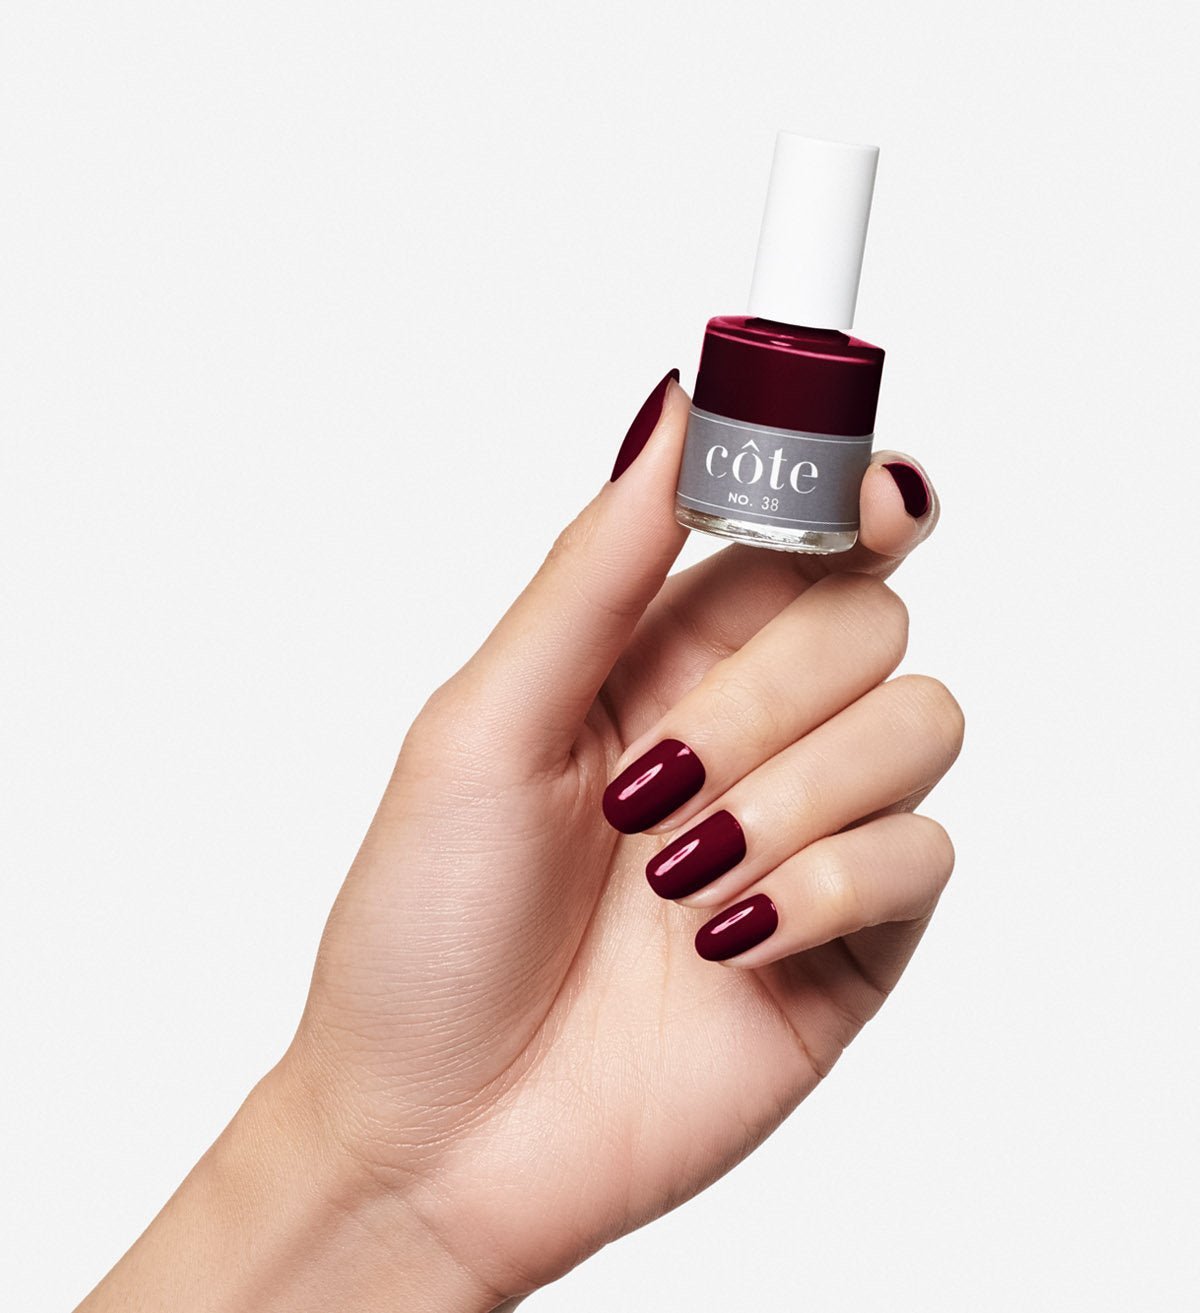 Shop No. 38 Nail Polish by cote - Let's make it a trend #explorebeautiful nailcare and nail polish